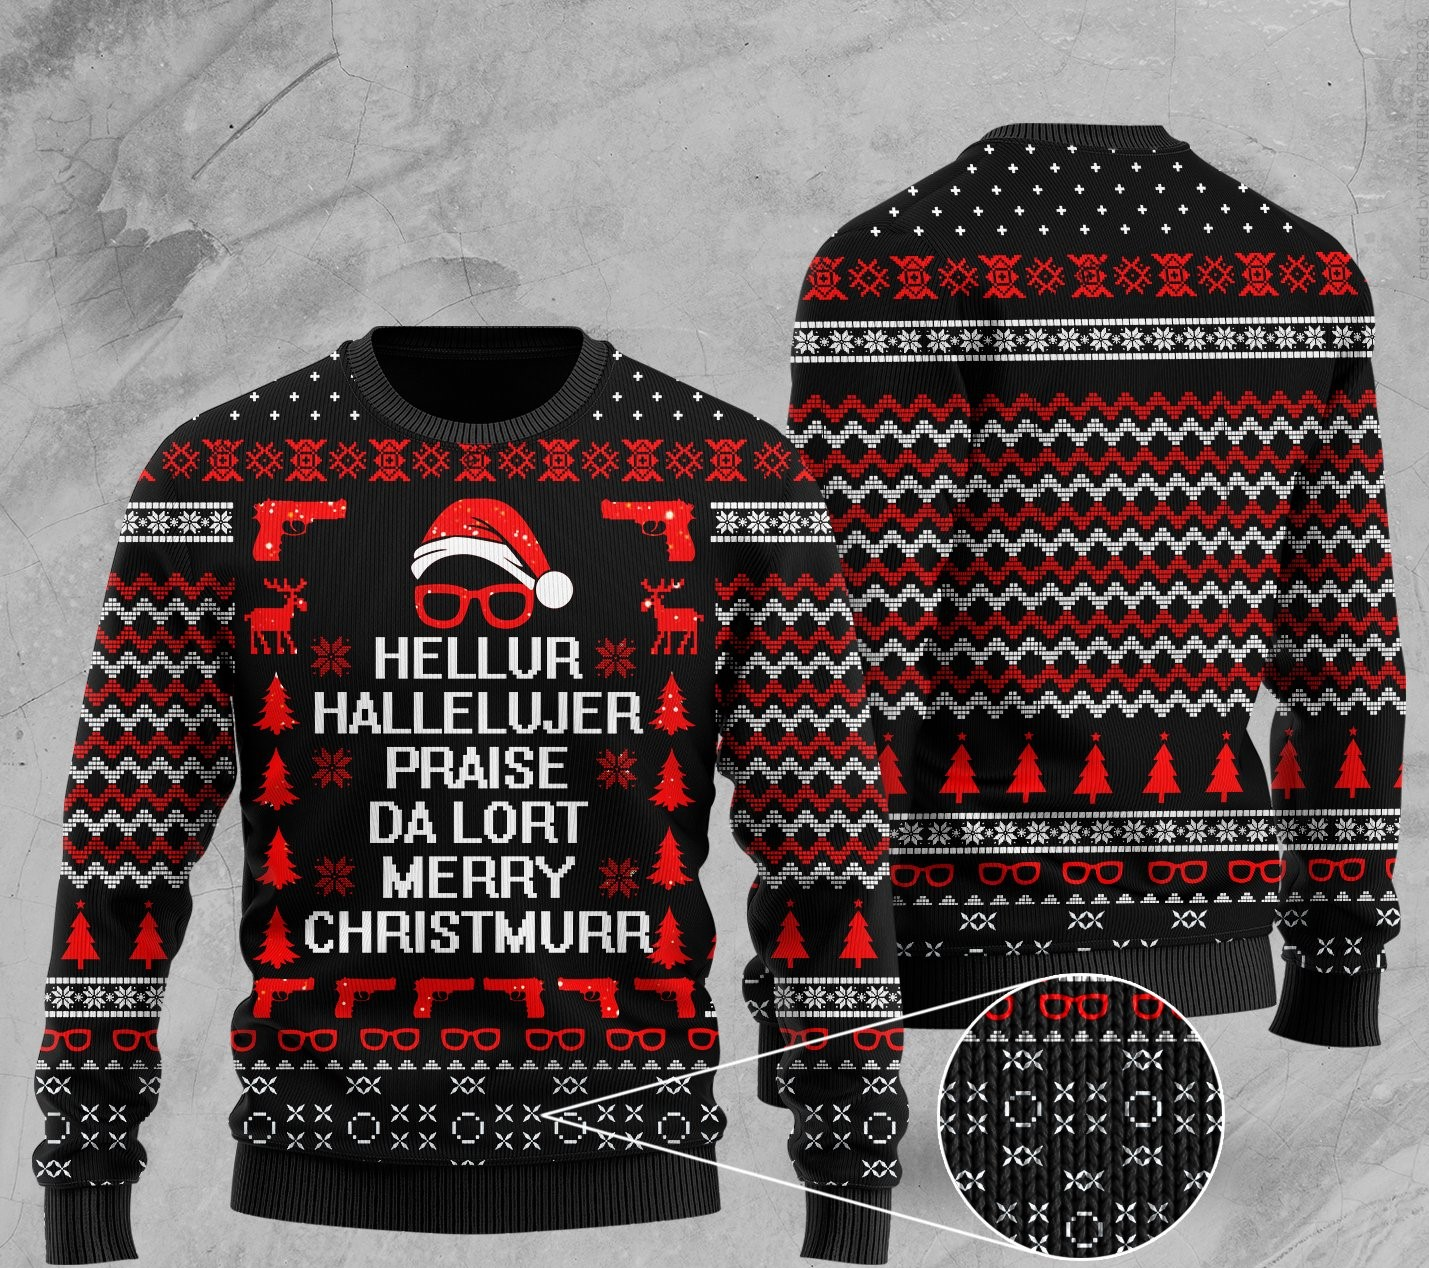 hellur hallelujer praise da lort merry christmas all over print ugly christmas sweater 2